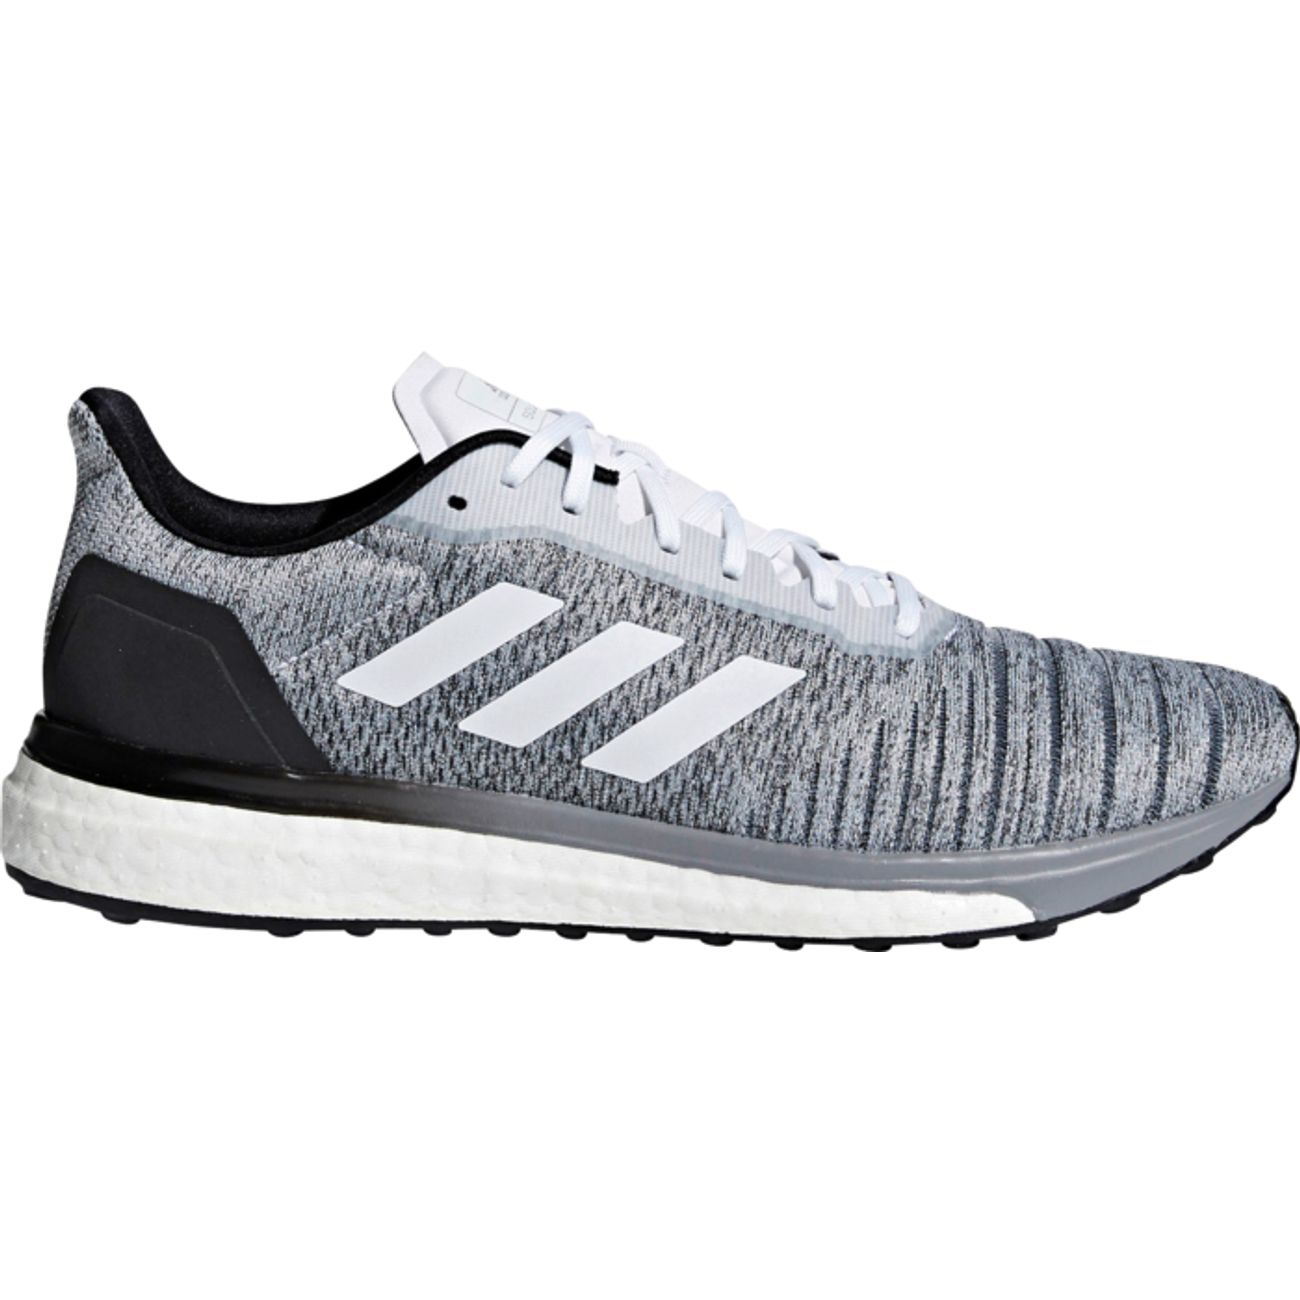 CHAUSSURES running homme ADIDAS SOLAR DRIVE M